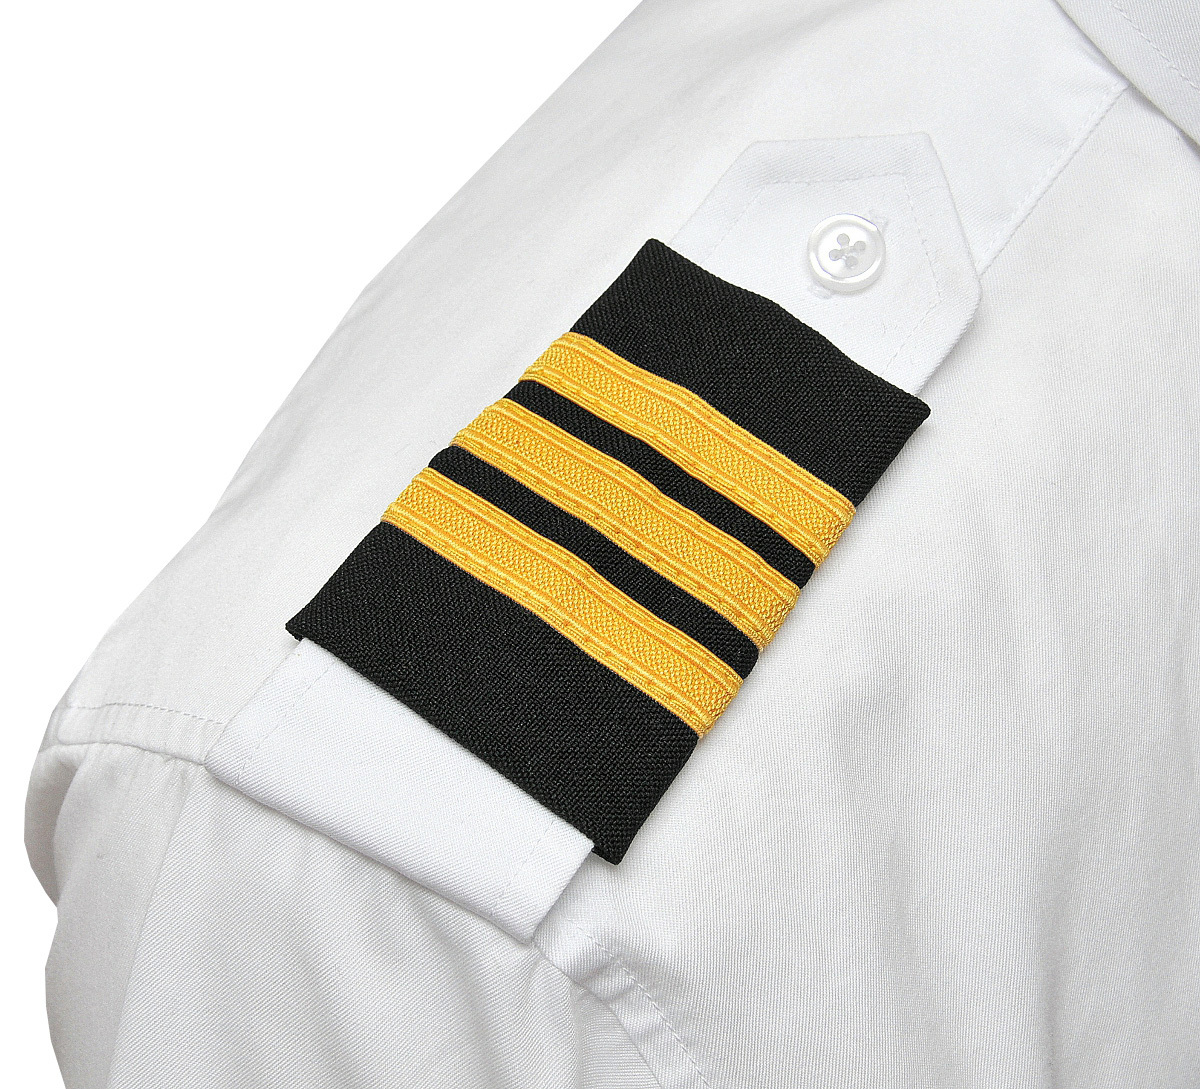 Three Gold Bar Epaulets - Nylon on Black